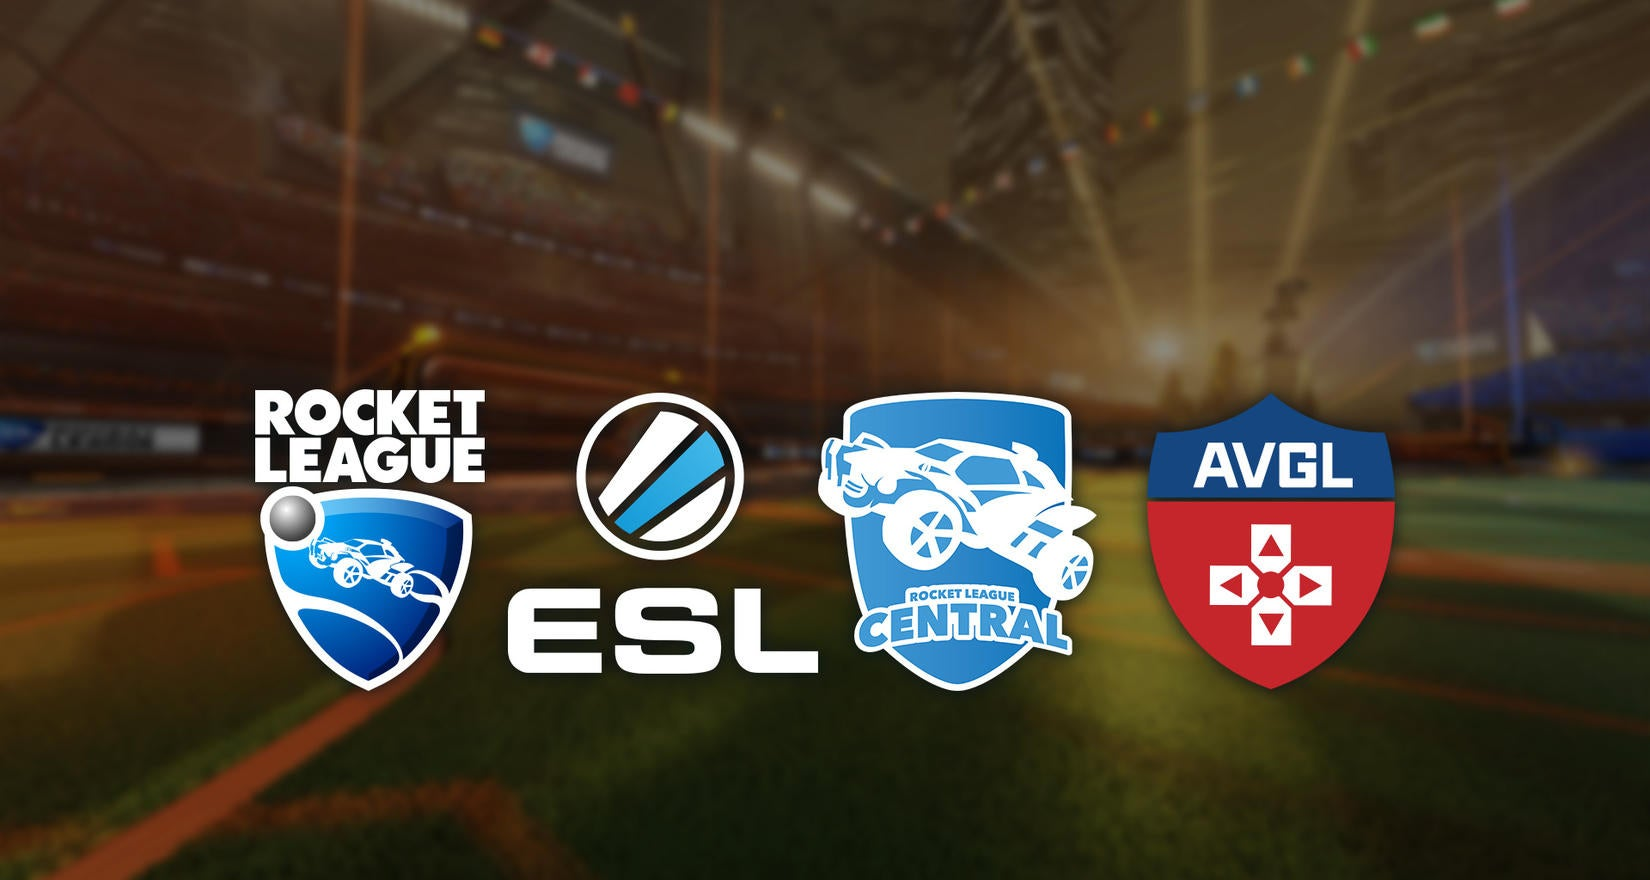 Rocket League Partners With ESL, Rocket League Central, and AVGL Image